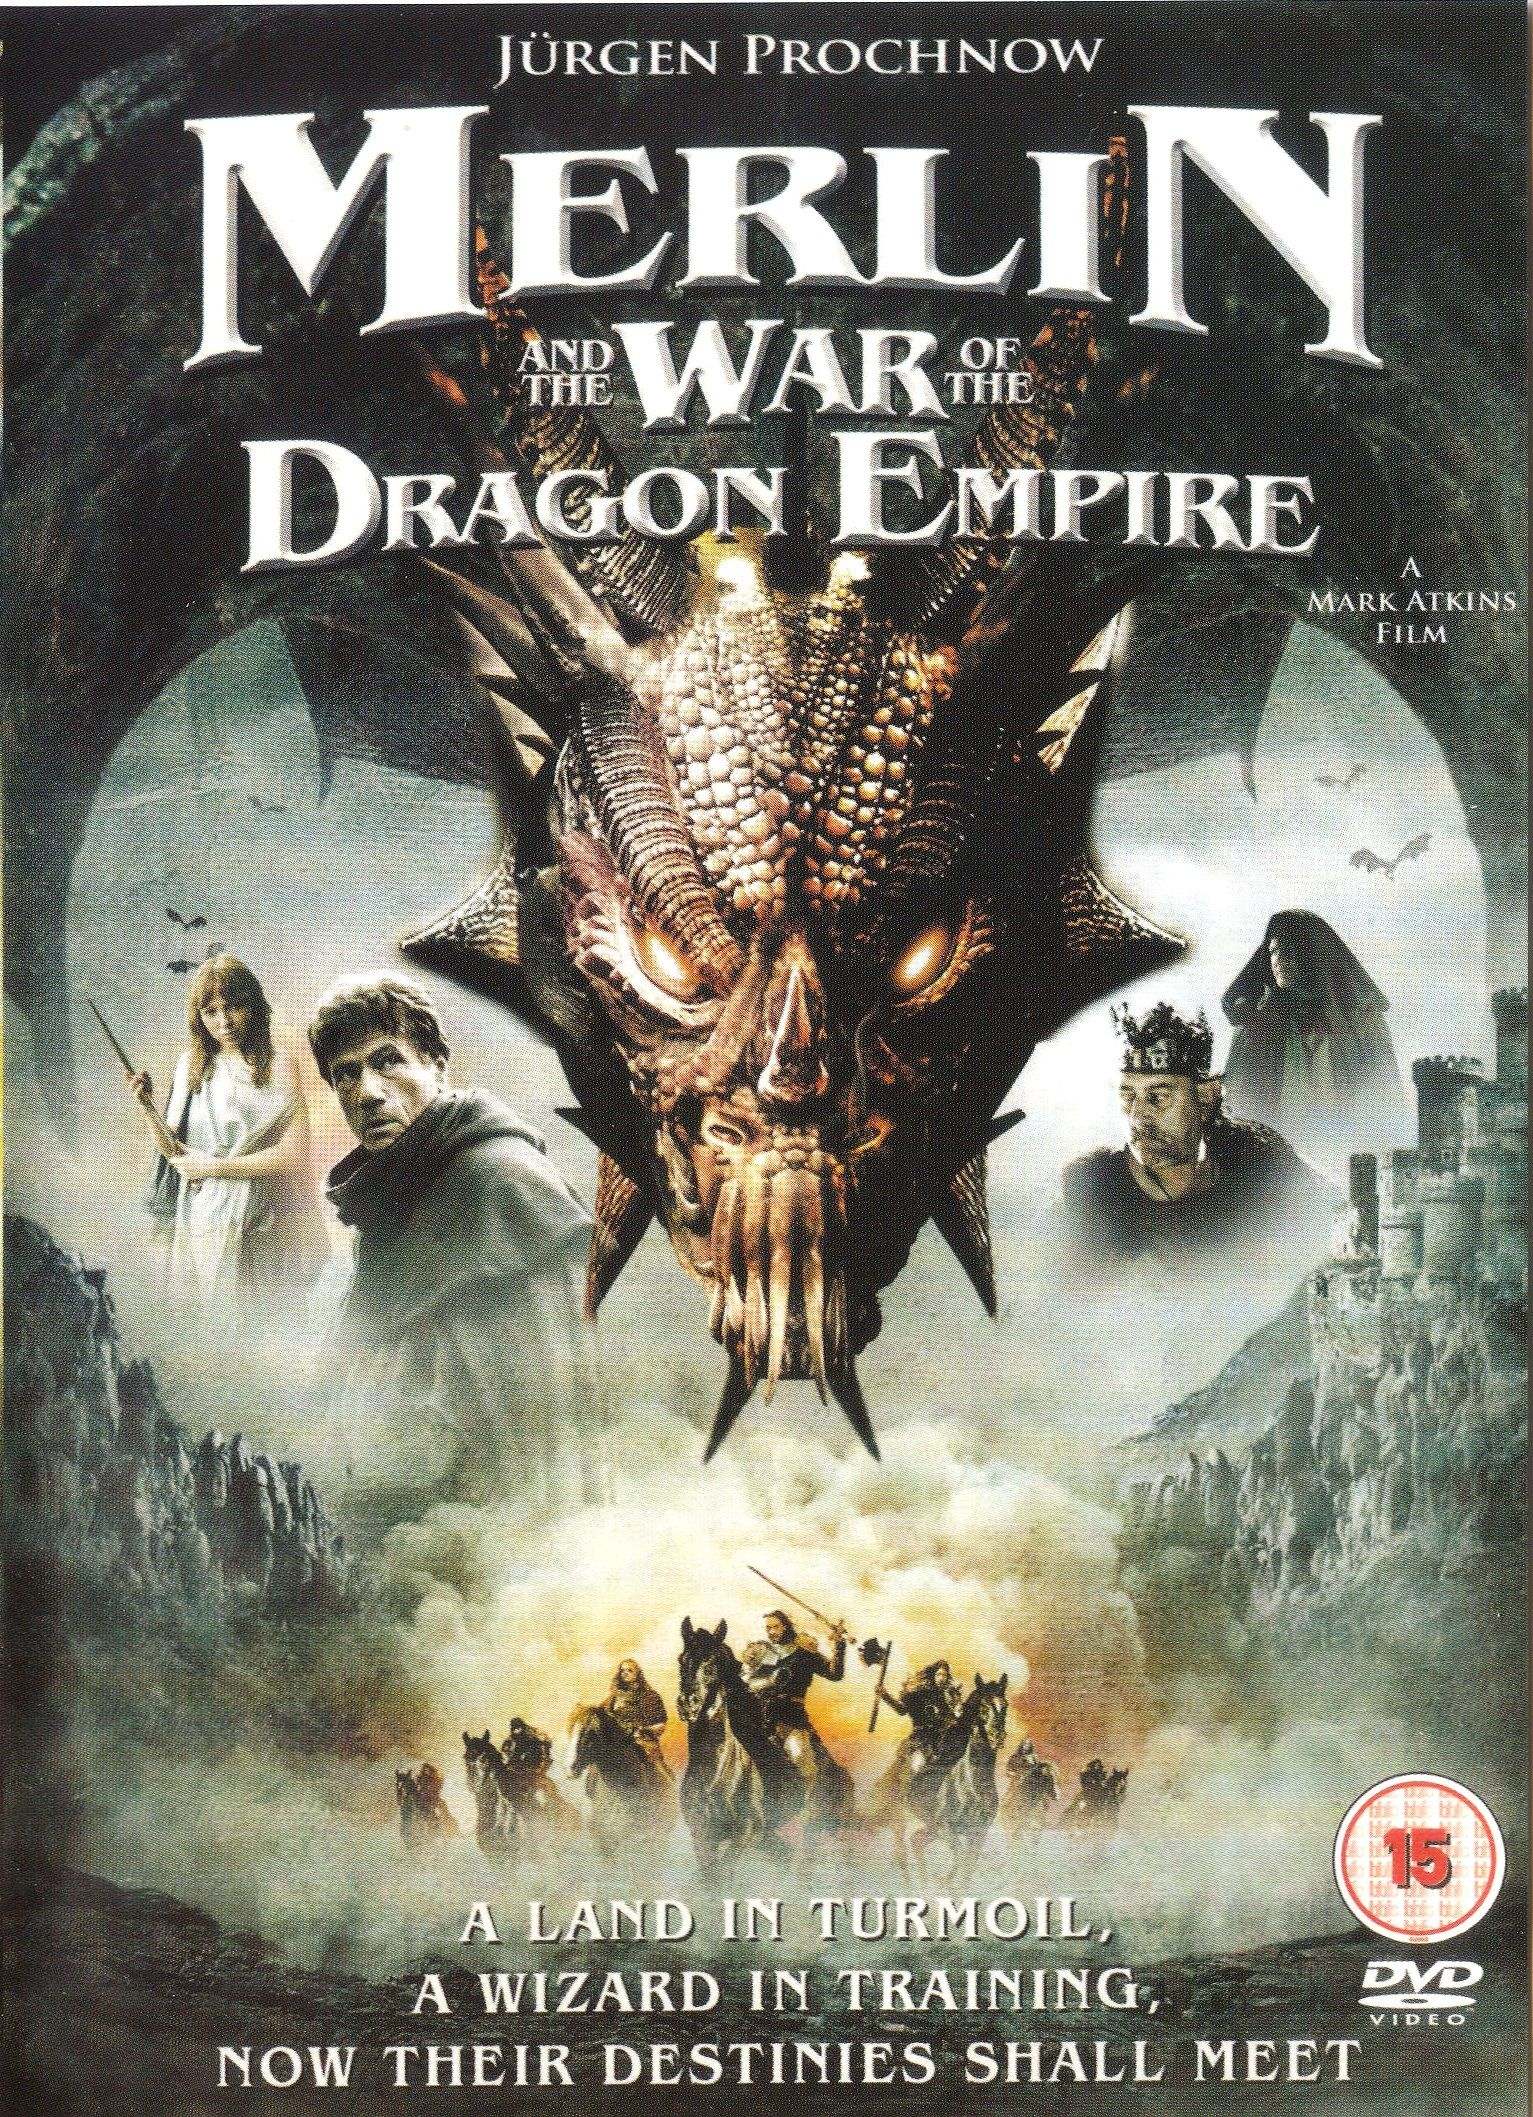 Merlin and the War of the Dragon Empire (2008) Jürgen